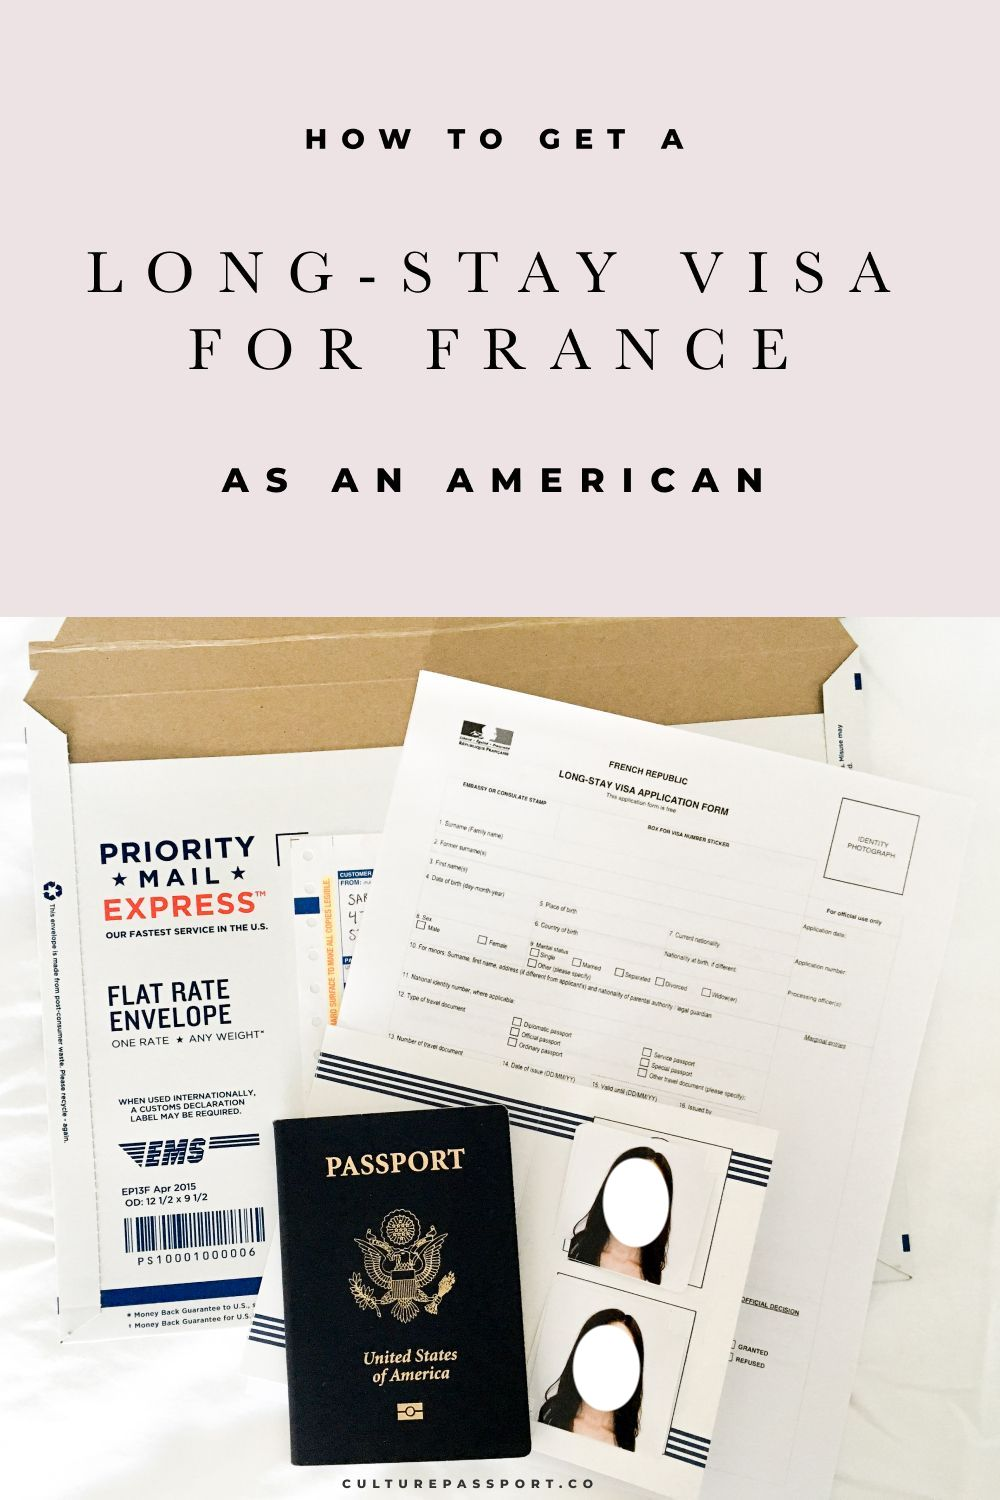 How To Get A Long Stay Visa For France As An American